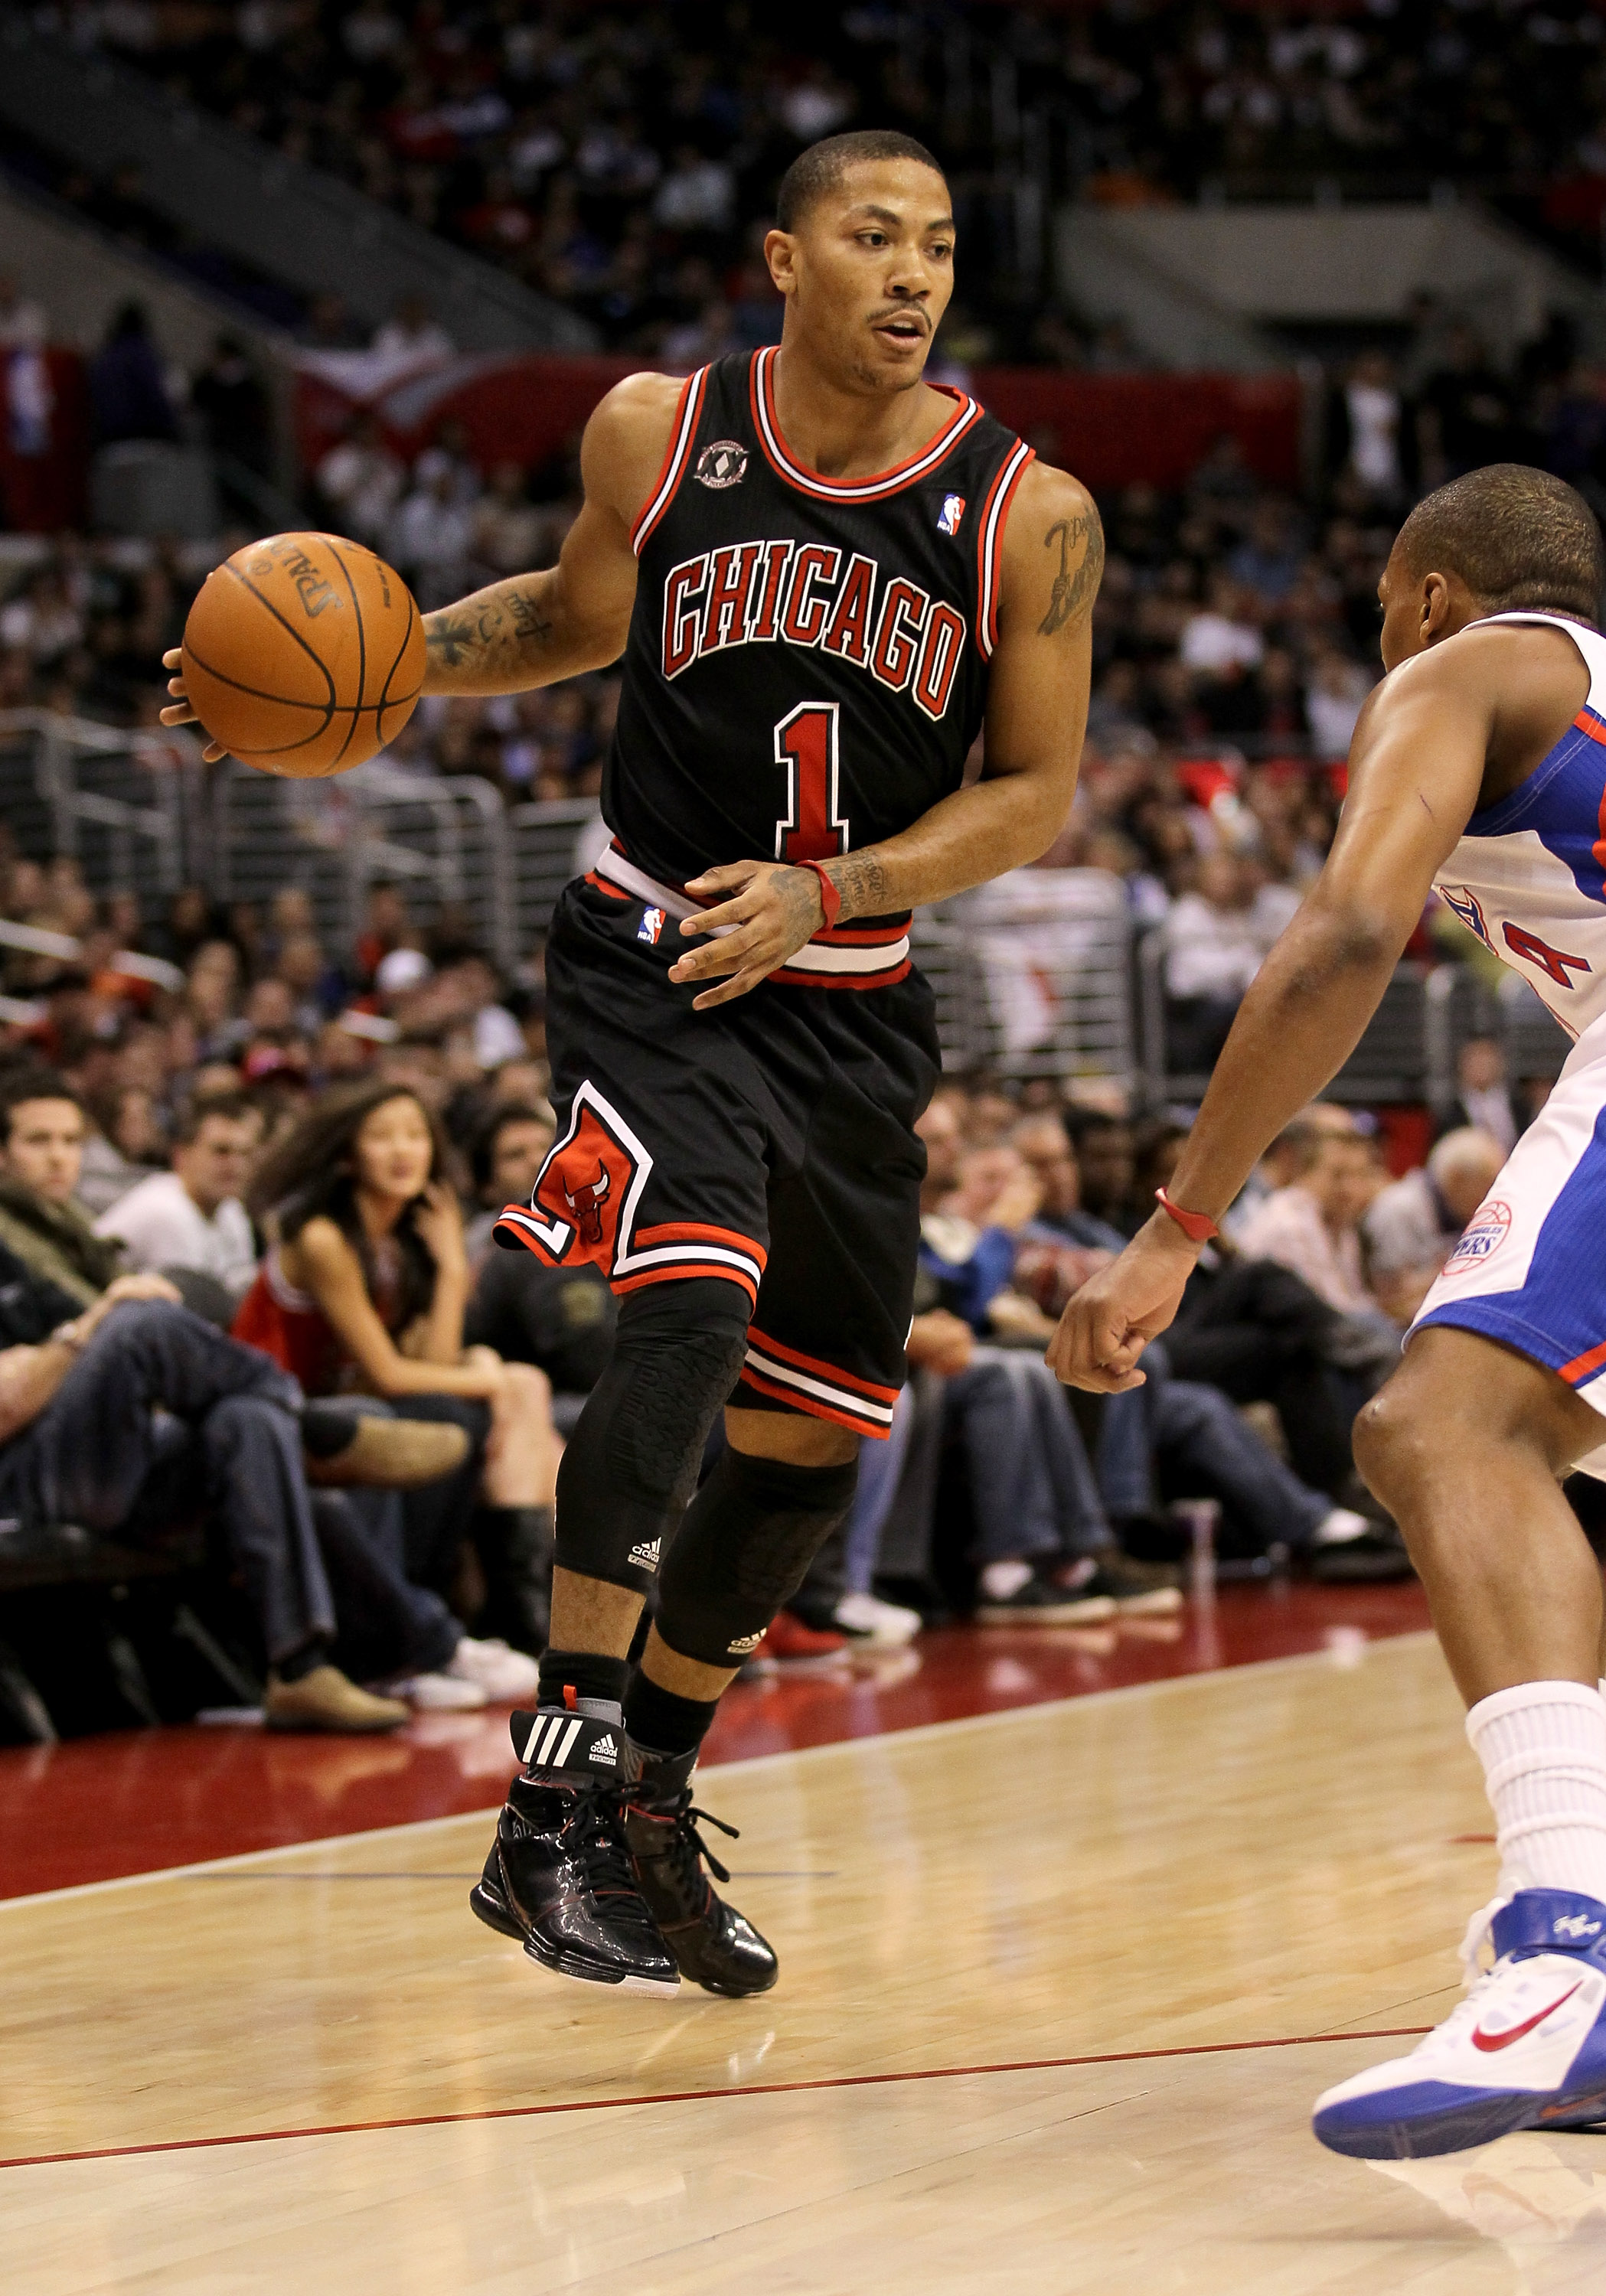 Hibbert and no 6 seed hawks al horford are two of the best centers - Los Angeles Ca February 02 Derrick Rose 1 Of The Chicago Bulls